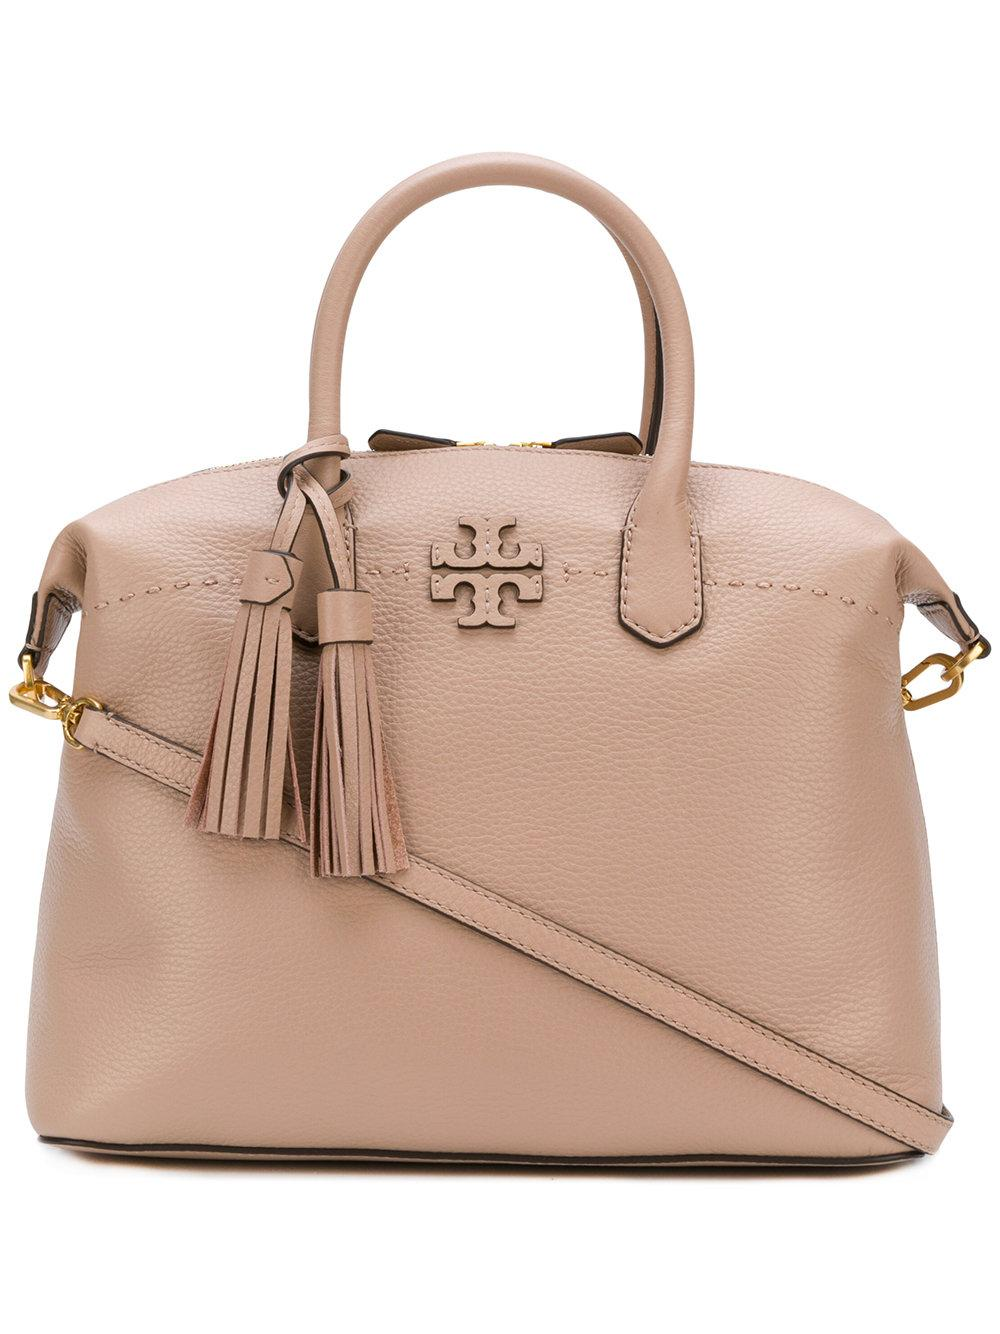 Tory Burch Mcgraw Slouchy Satchel In Pink